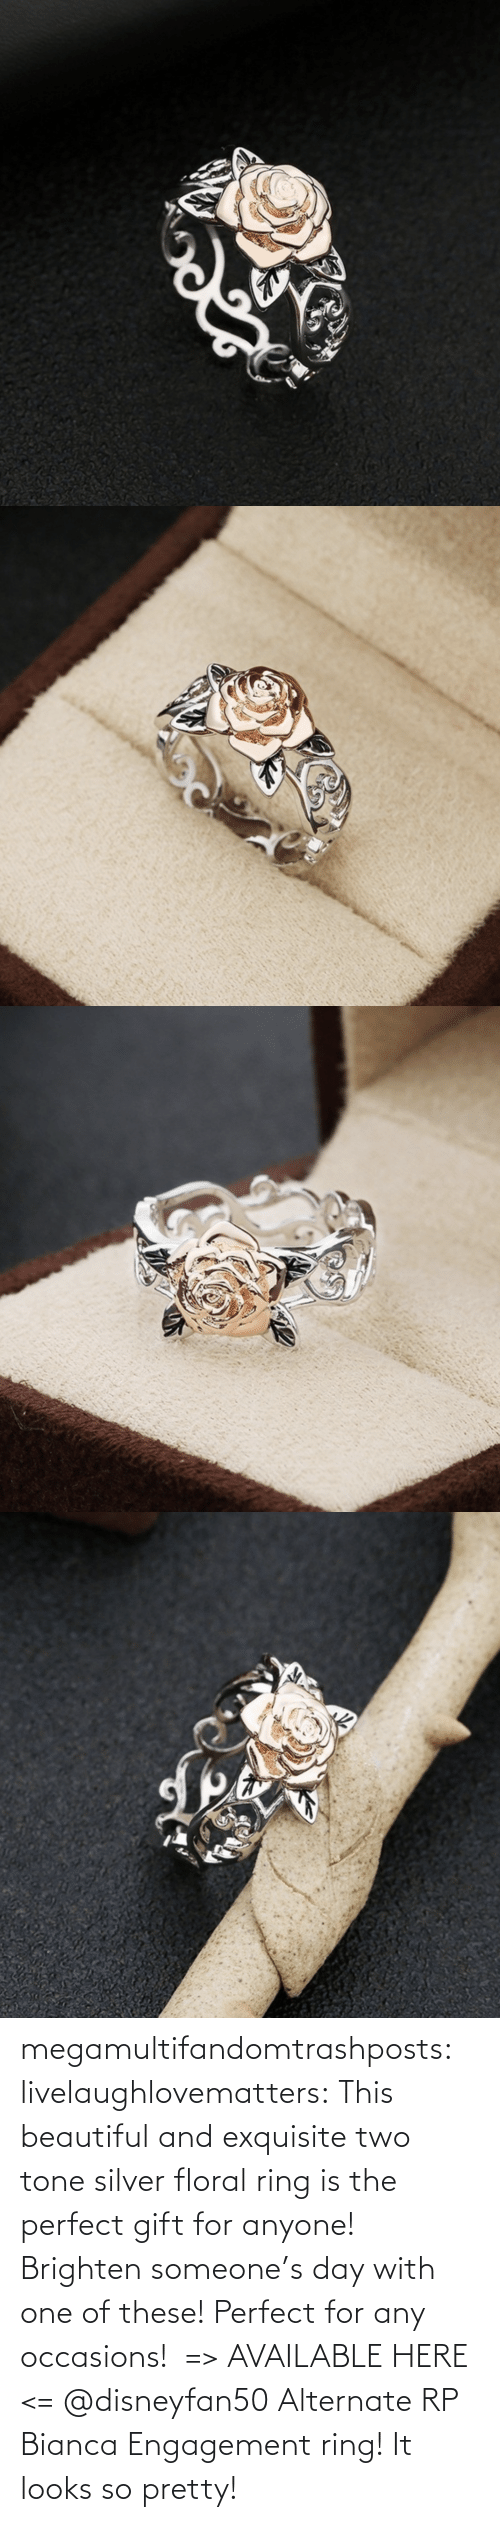 media: megamultifandomtrashposts:  livelaughlovematters: This beautiful and exquisite two tone silver floral ring is the perfect gift for anyone! Brighten someone's day with one of these! Perfect for any occasions!  => AVAILABLE HERE <=    @disneyfan50 Alternate RP Bianca Engagement ring! It looks so pretty!